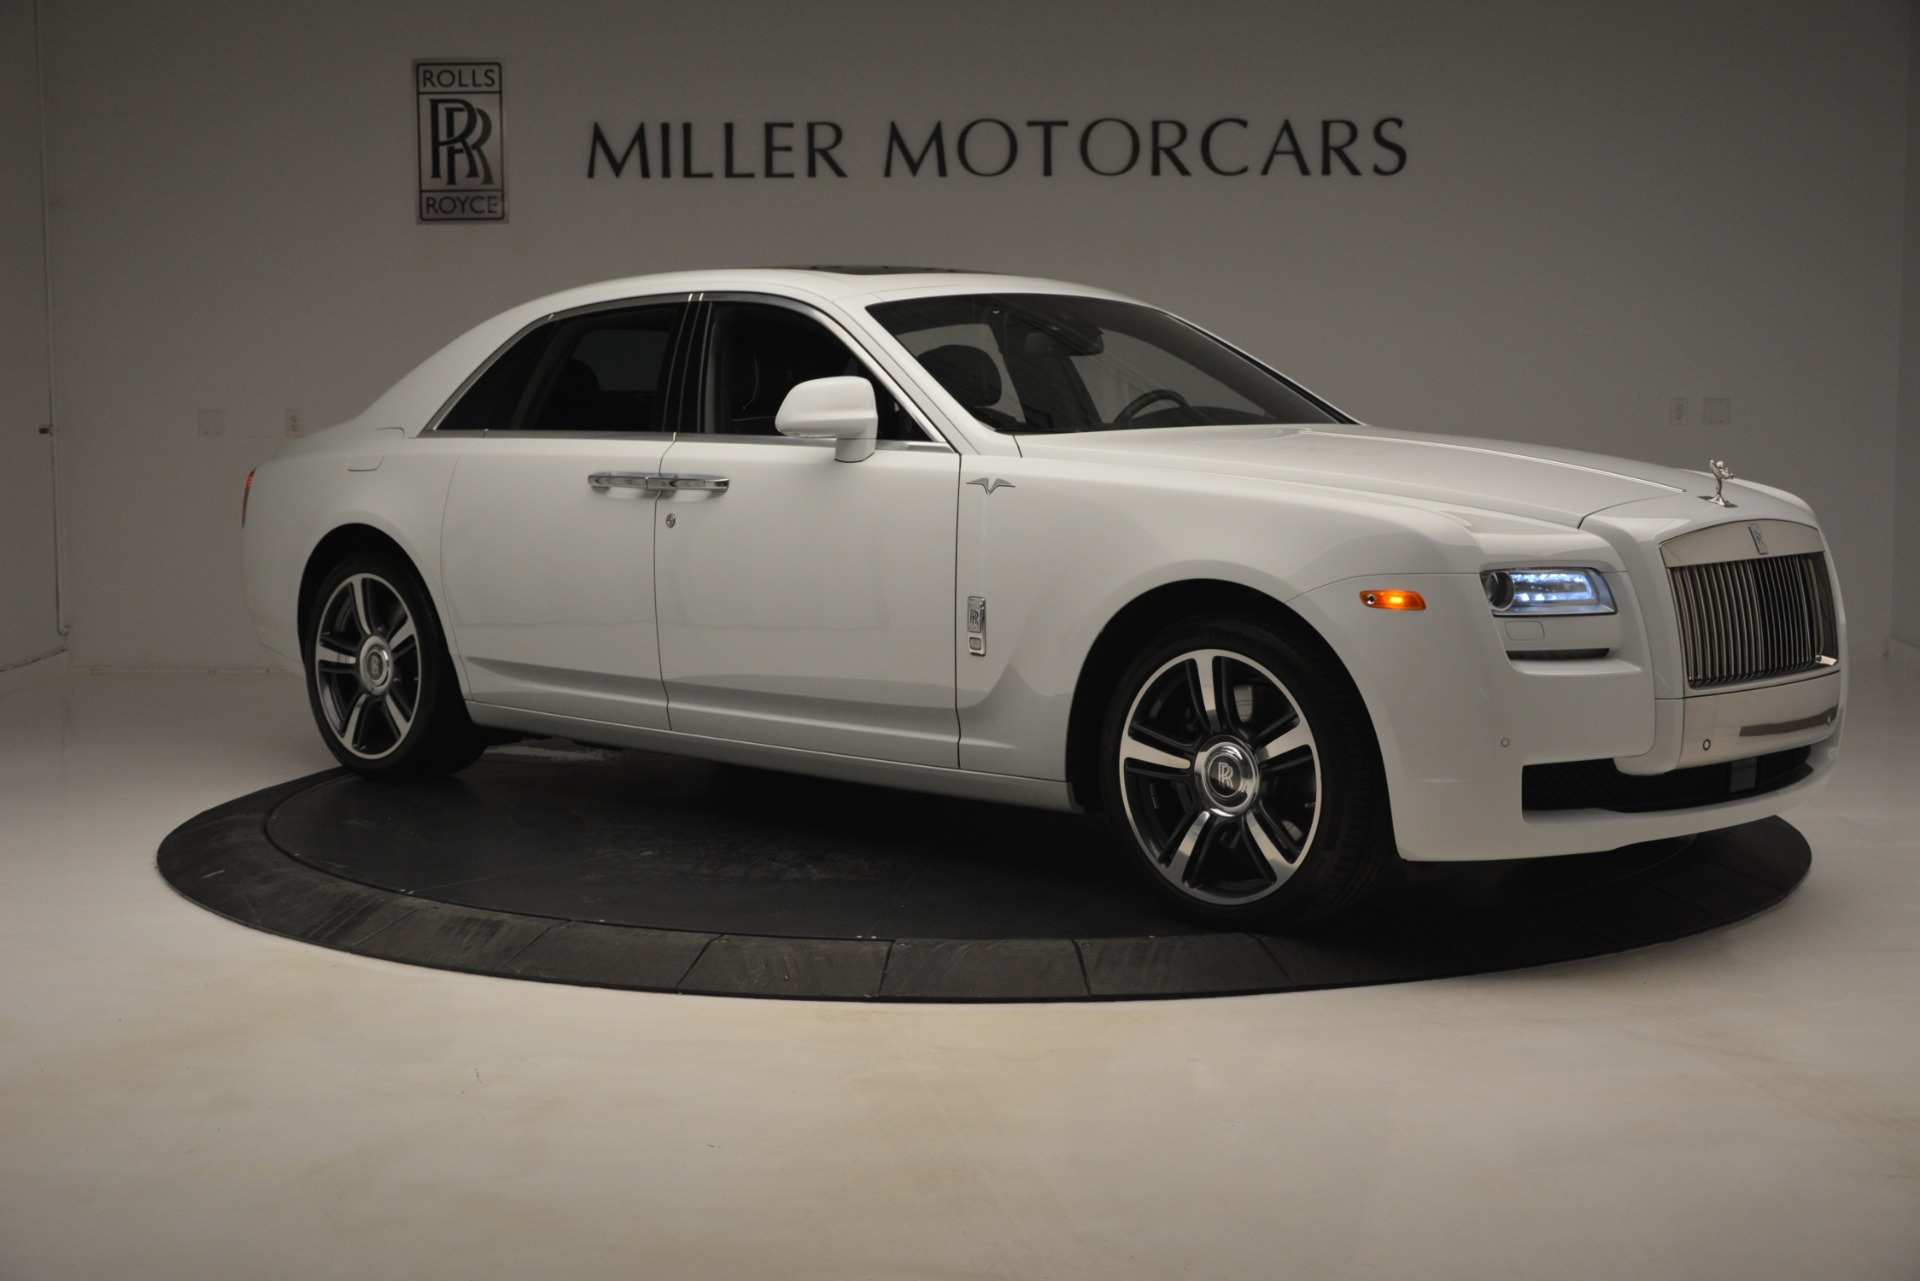 Used 2014 Rolls-Royce Ghost V-Spec For Sale In Westport, CT 2989_p10